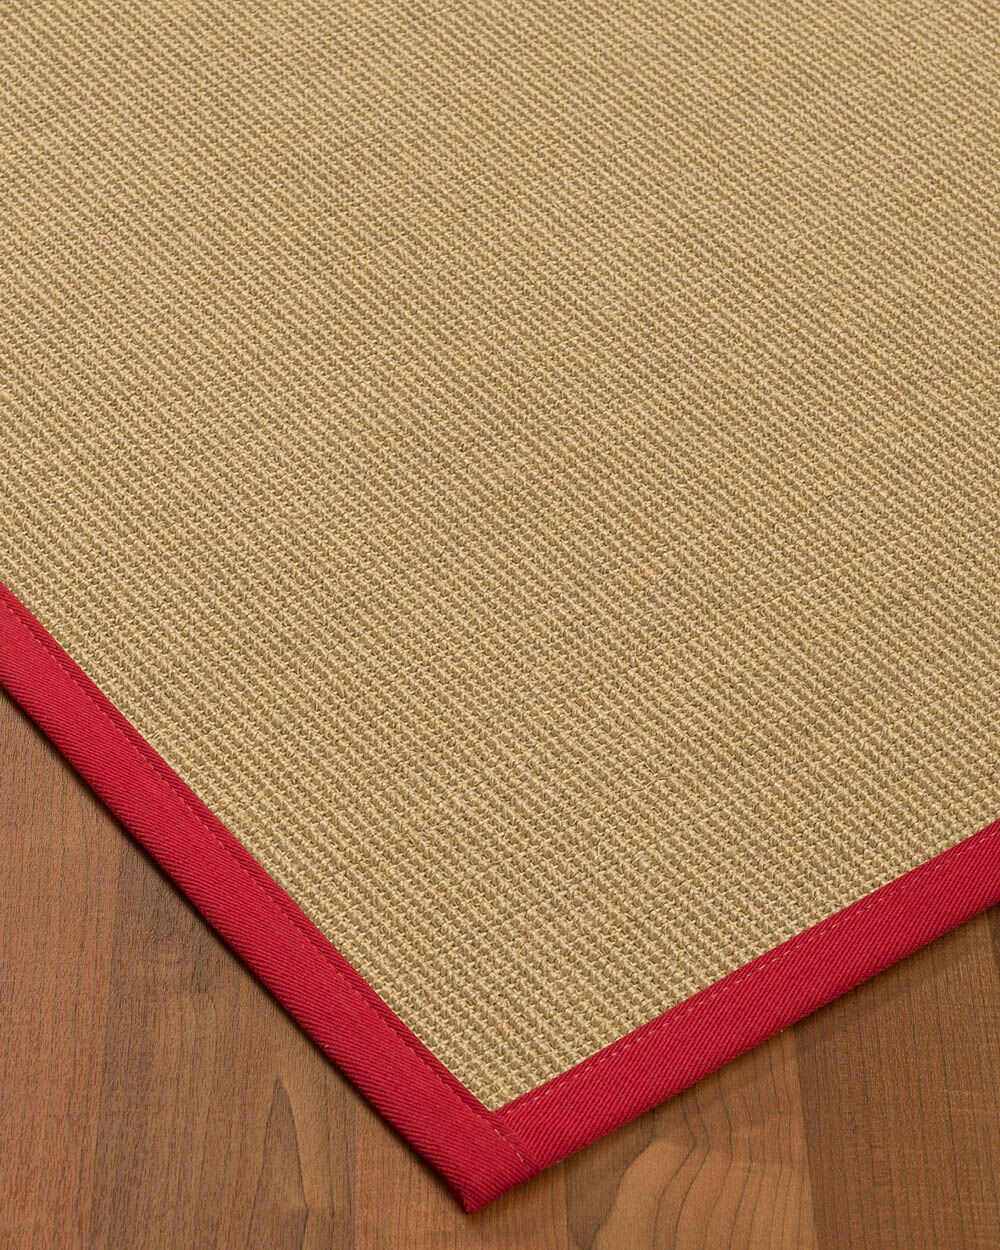 Atwell Border Hand-Woven Beige/Red Area Rug Rug Size: Rectangle 9' x 12', Rug Pad Included: Yes